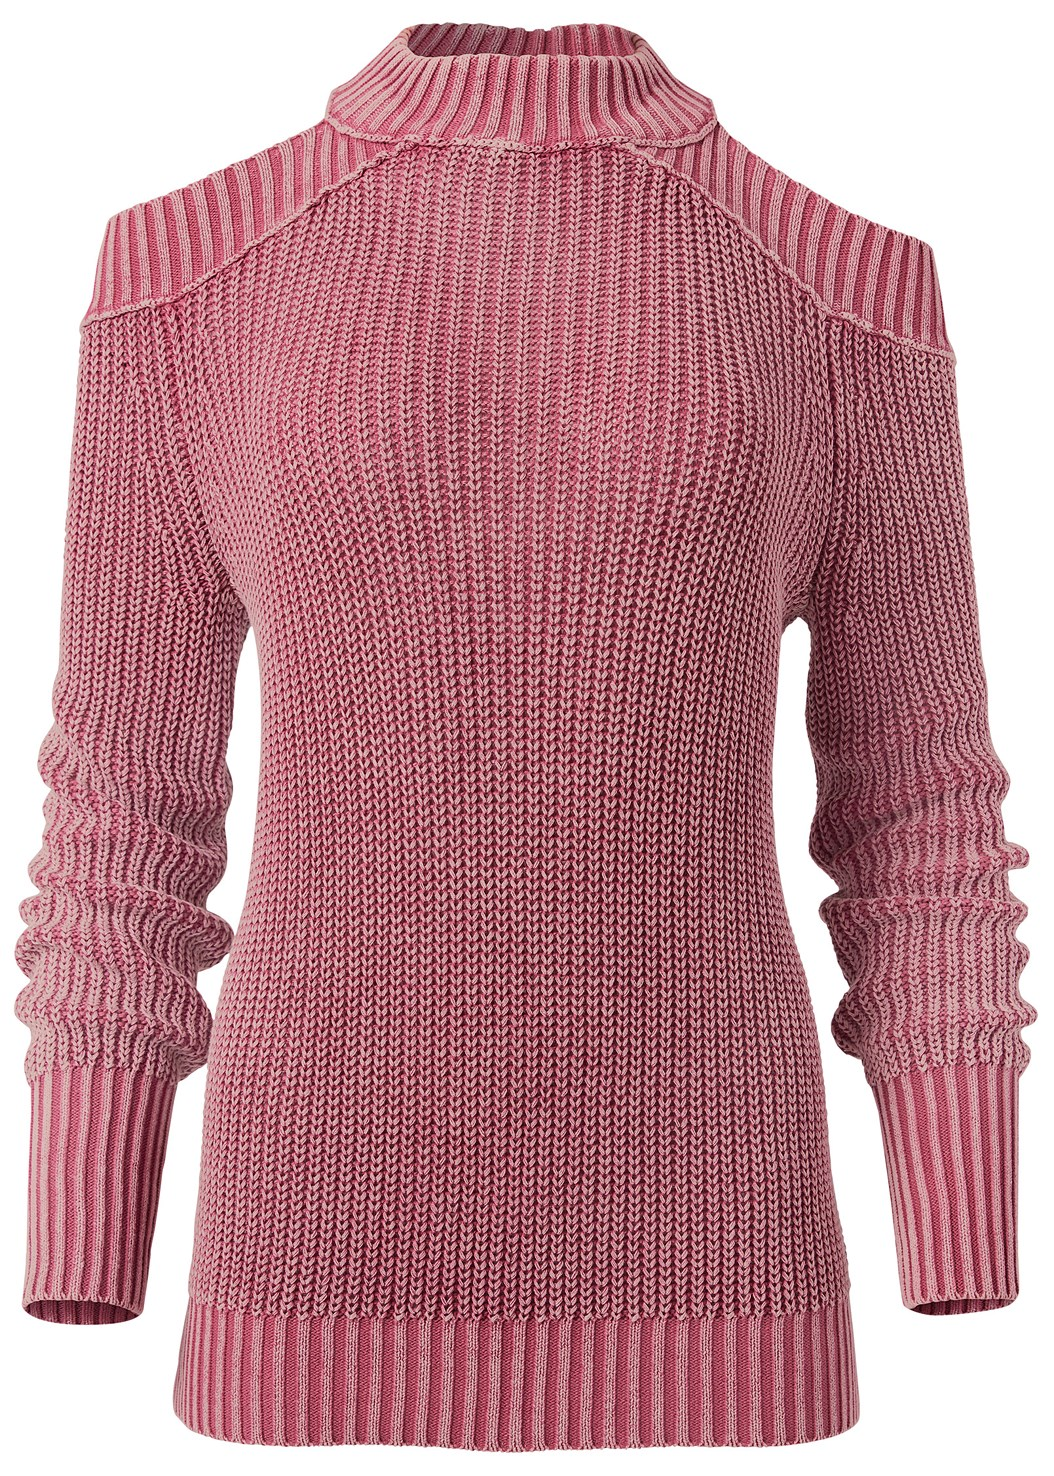 Cold Shoulder Mock Neck Sweater,Mid Rise Color Skinny Jeans,Beaded Drop Earrings